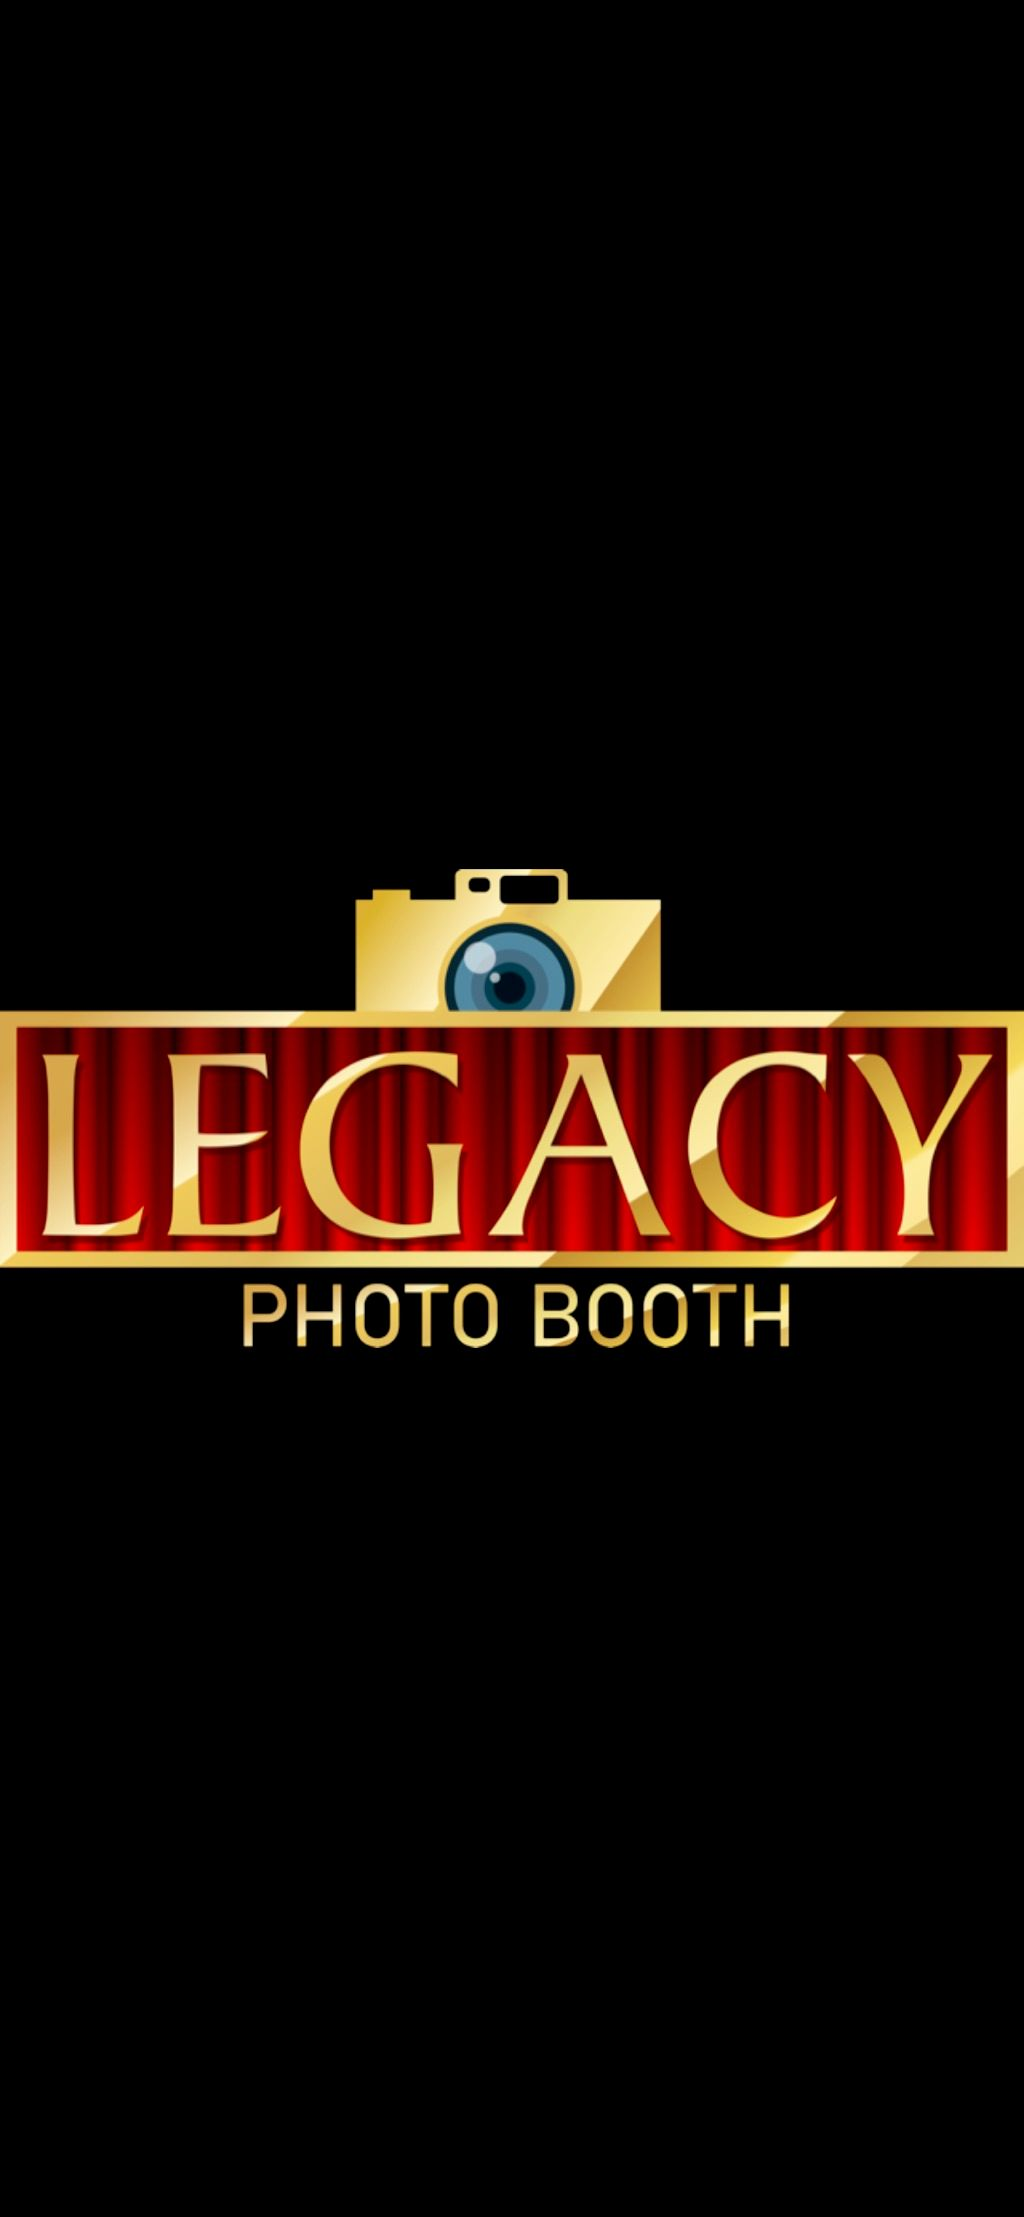 Legacy Photo Booth